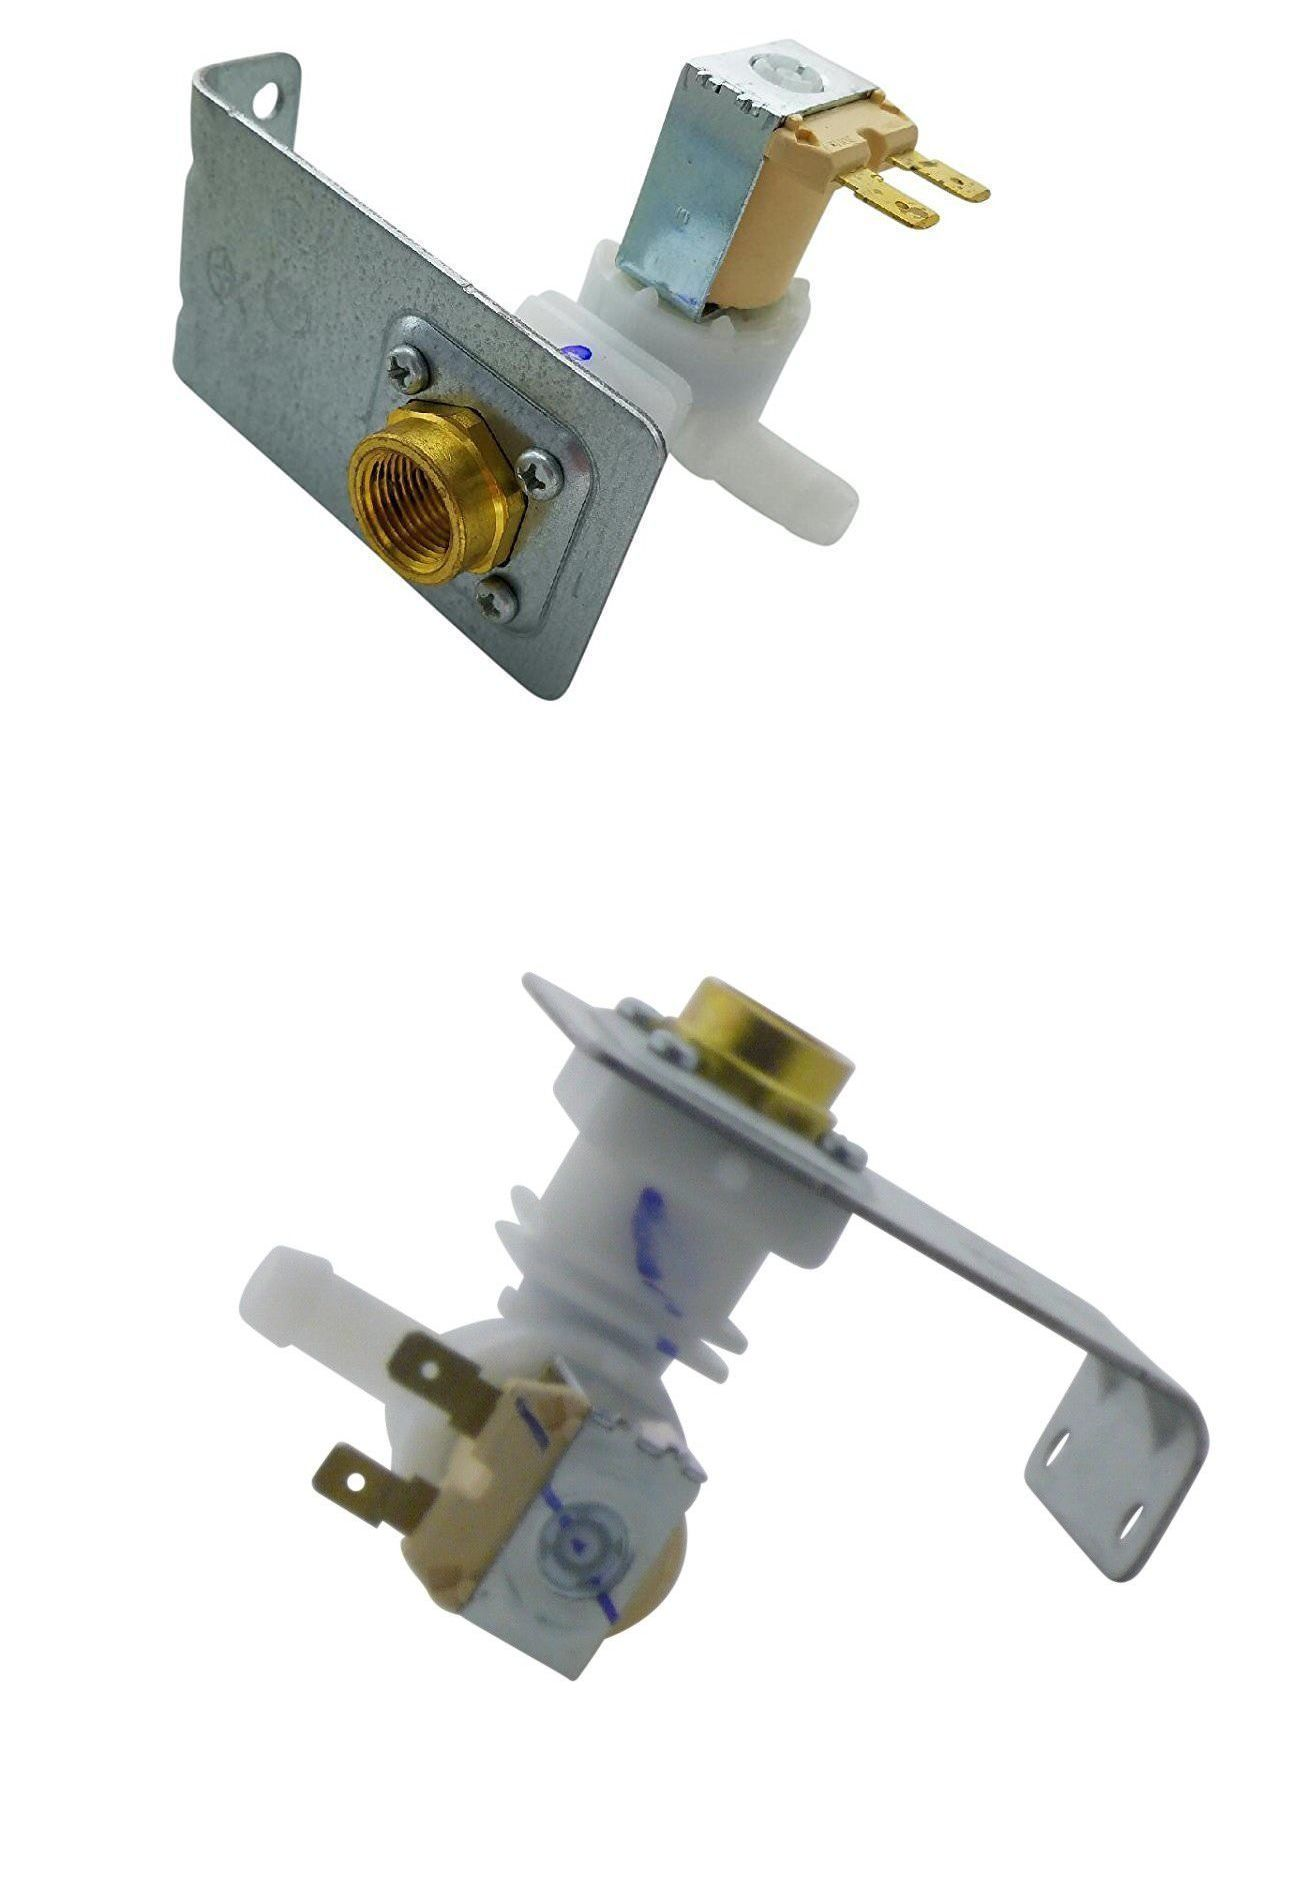 Details About Replacement 154637401 Dishwasher Water Inlet Valve